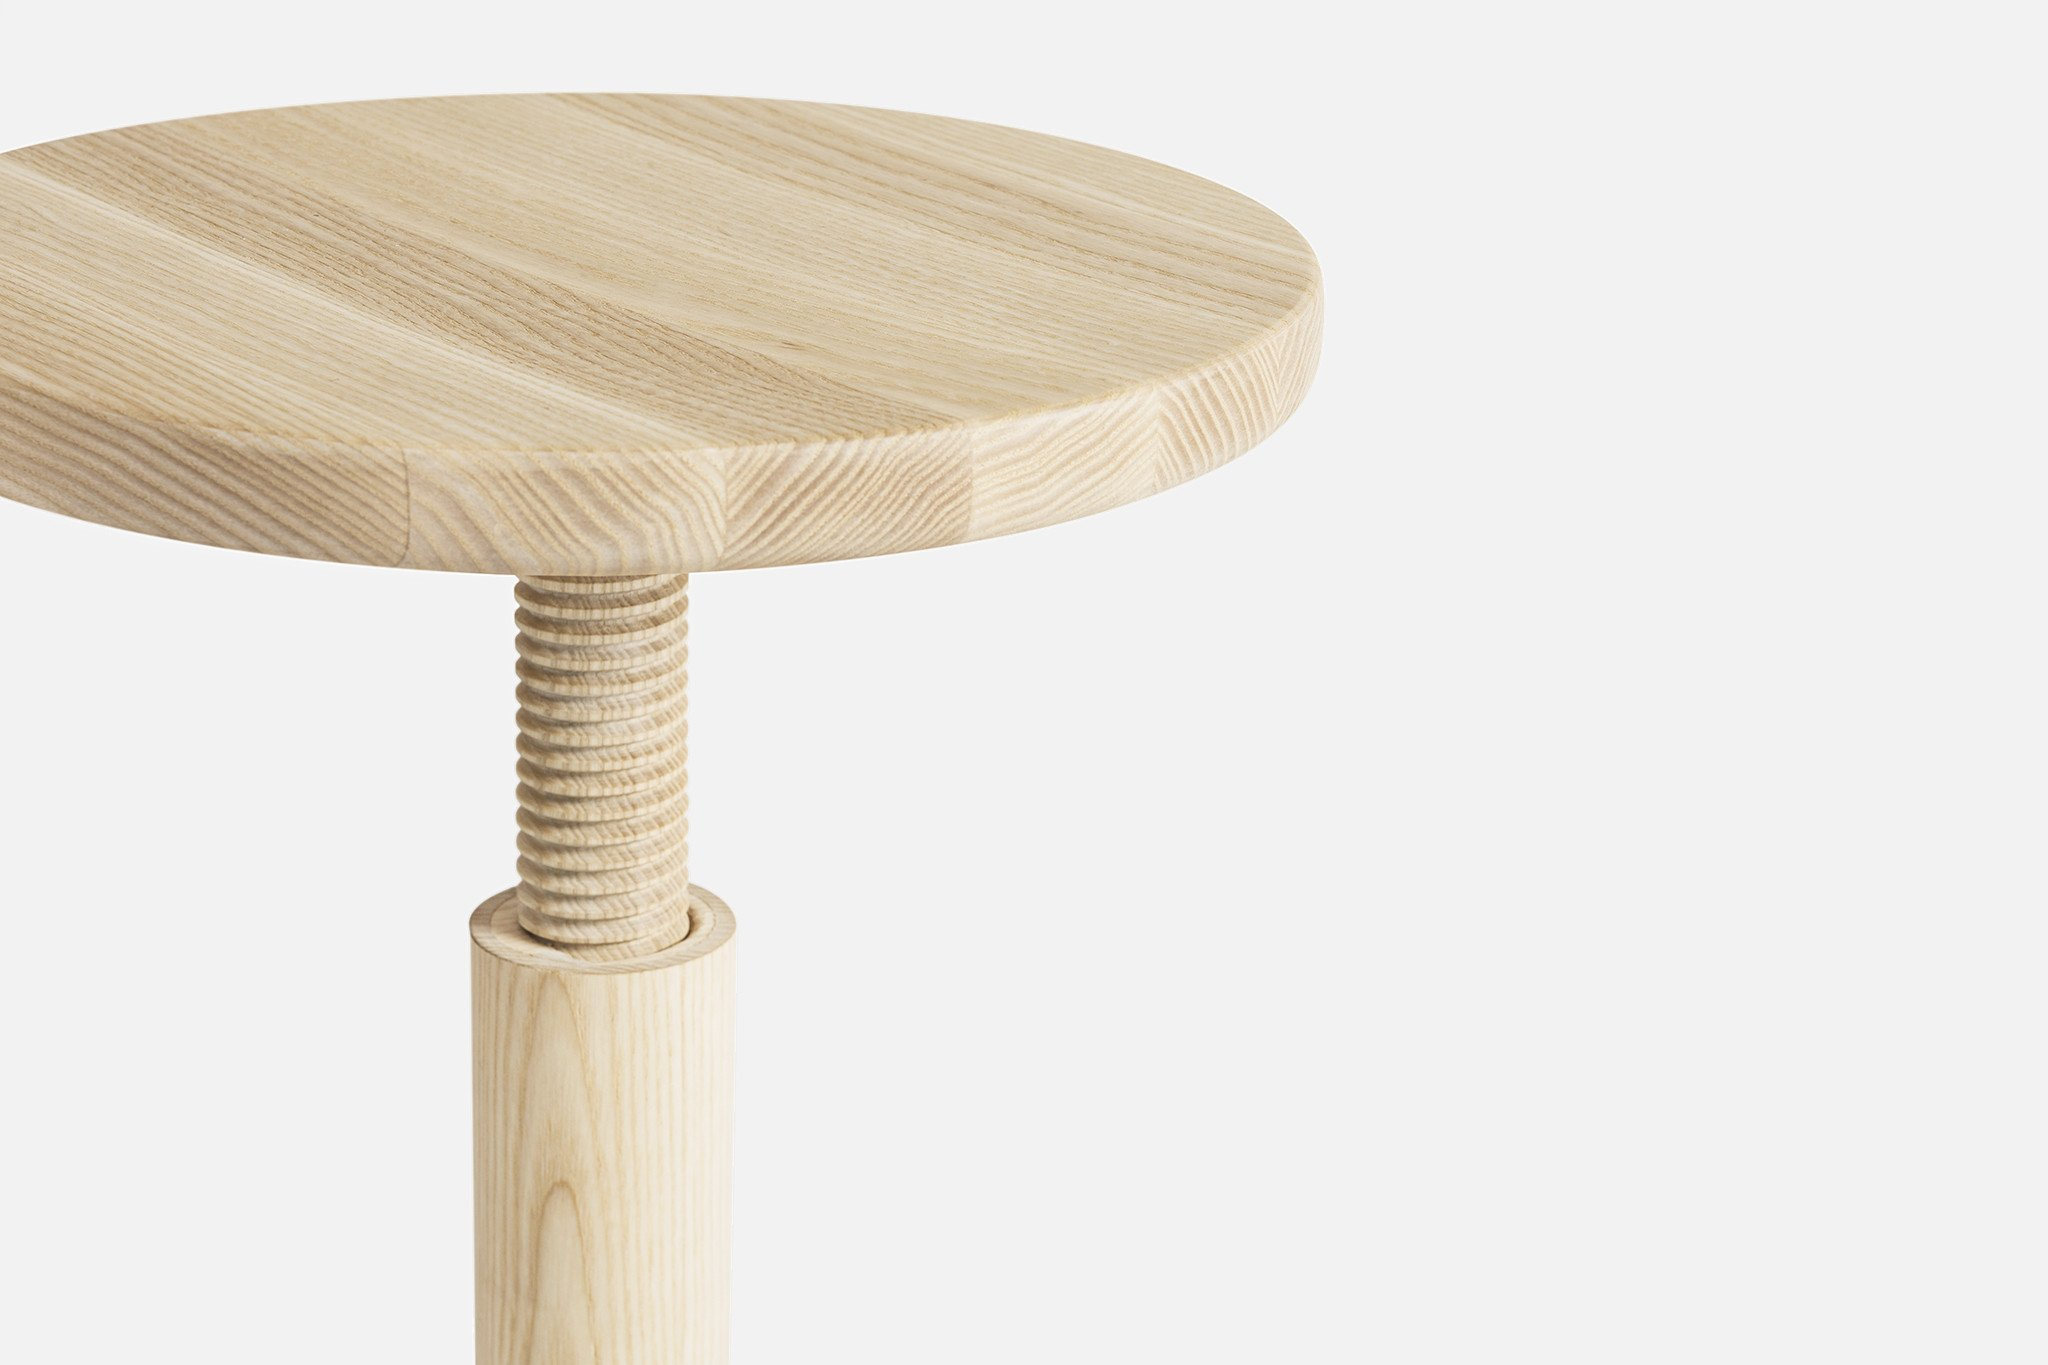 All Wood Stool by Karoline Fesser